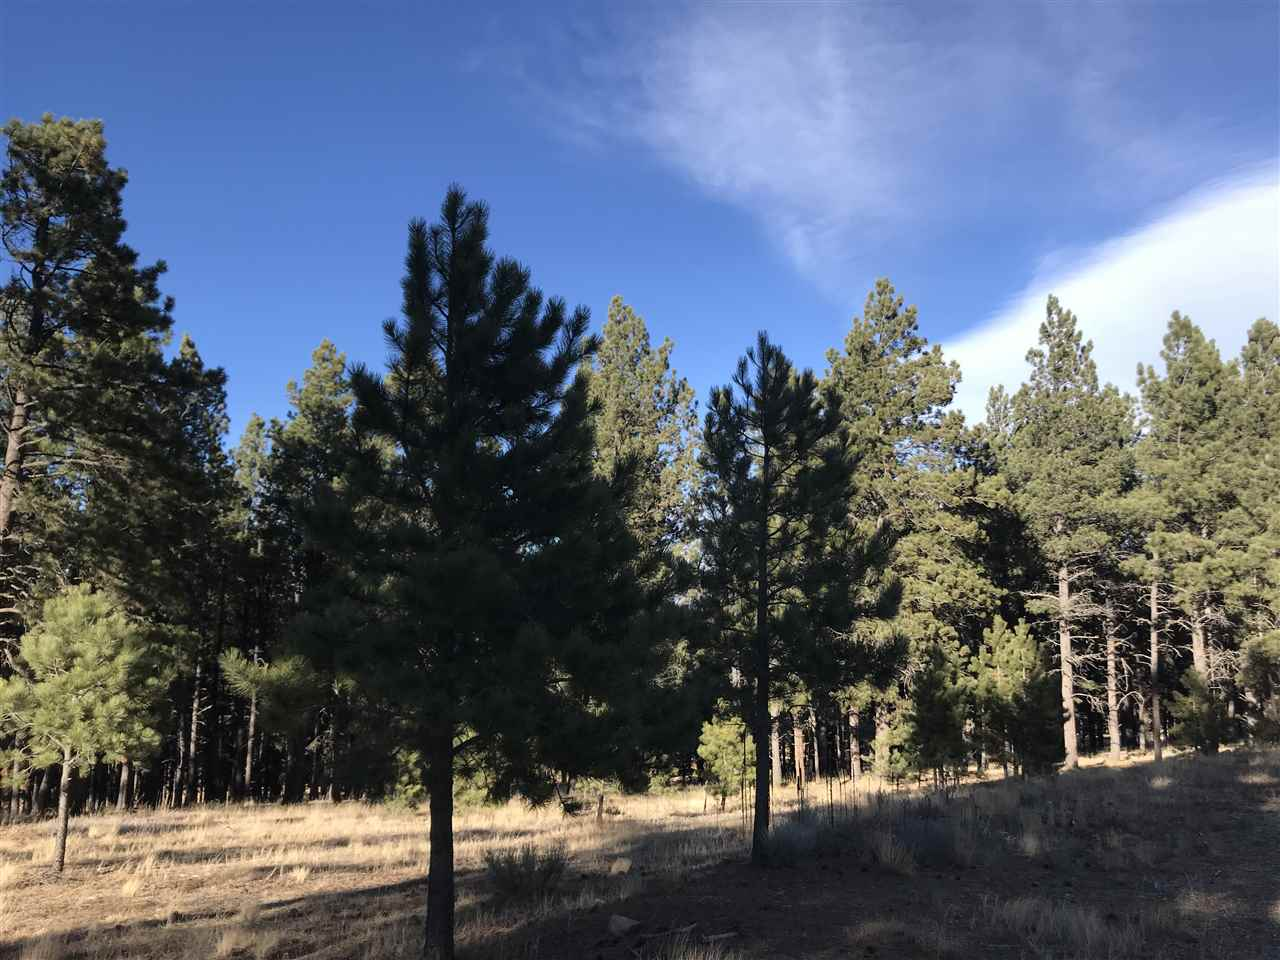 2.38 acres wooded lot with gentle slope and potential Wheeler Peak views.  Close to town center, golf, tennis, walking path and Country Club.  Village sewer available and PID is paid off.